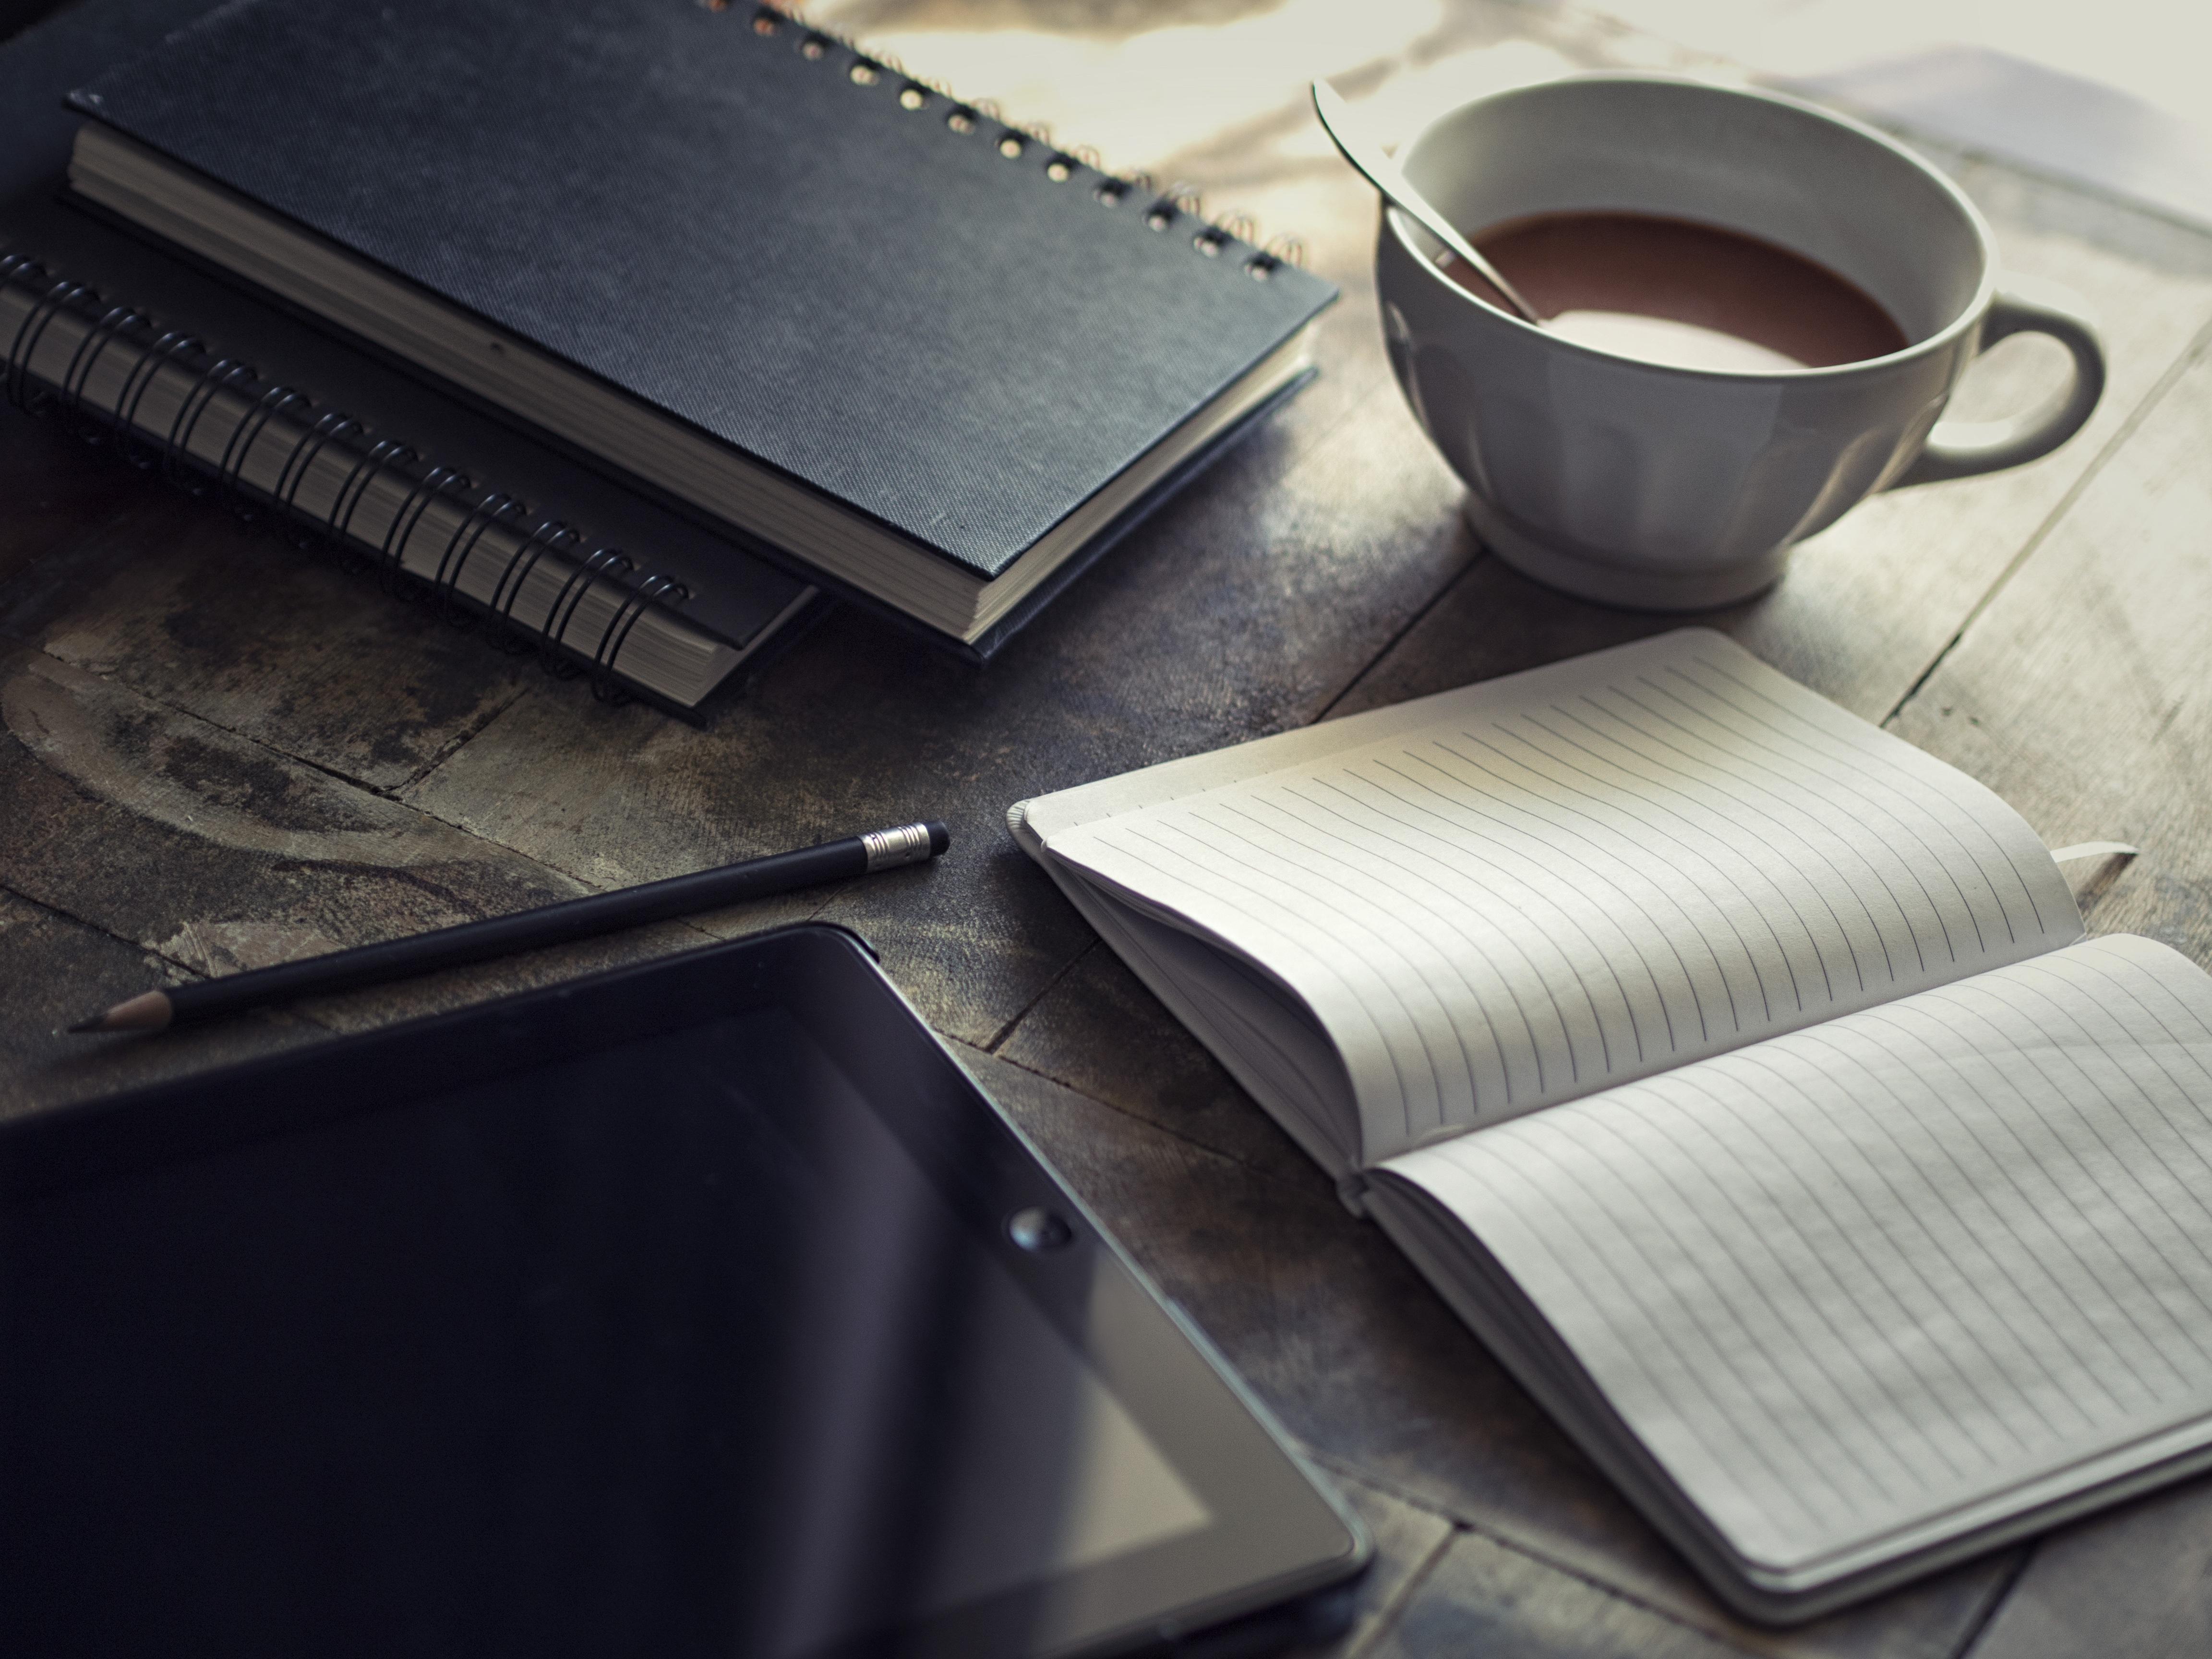 Coffee and note book on table